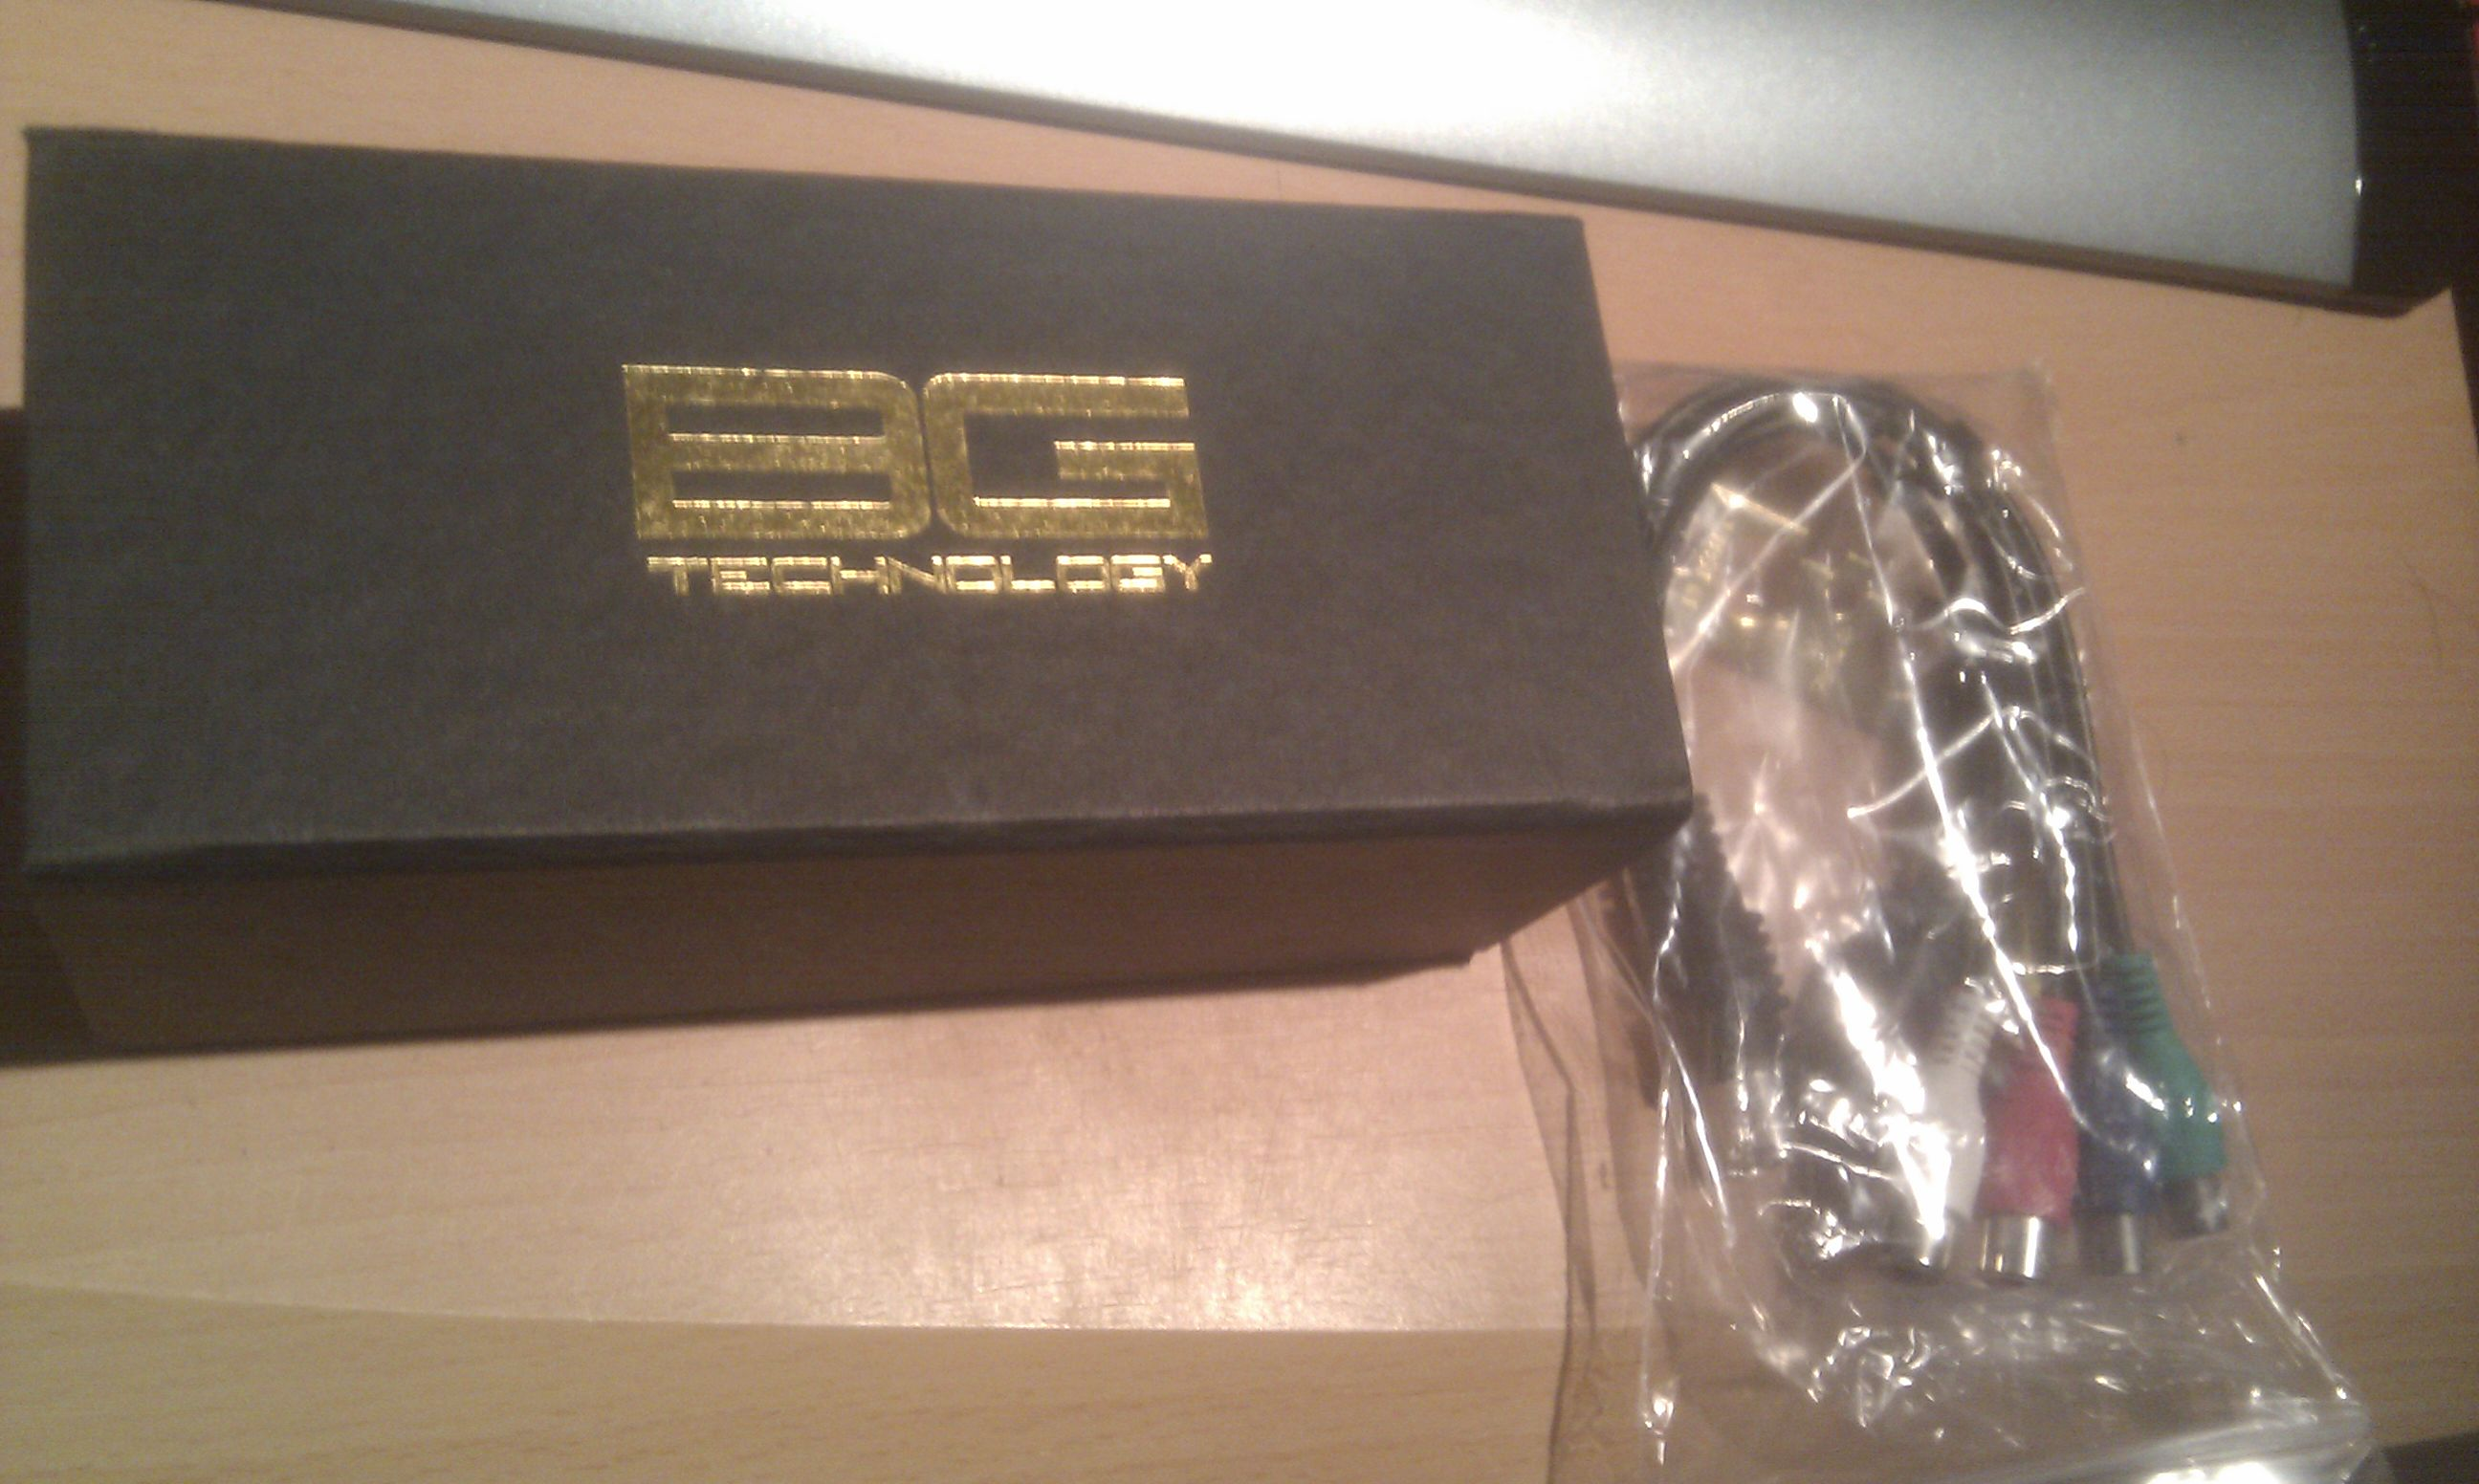 Blackgold BGT3630 Packaging